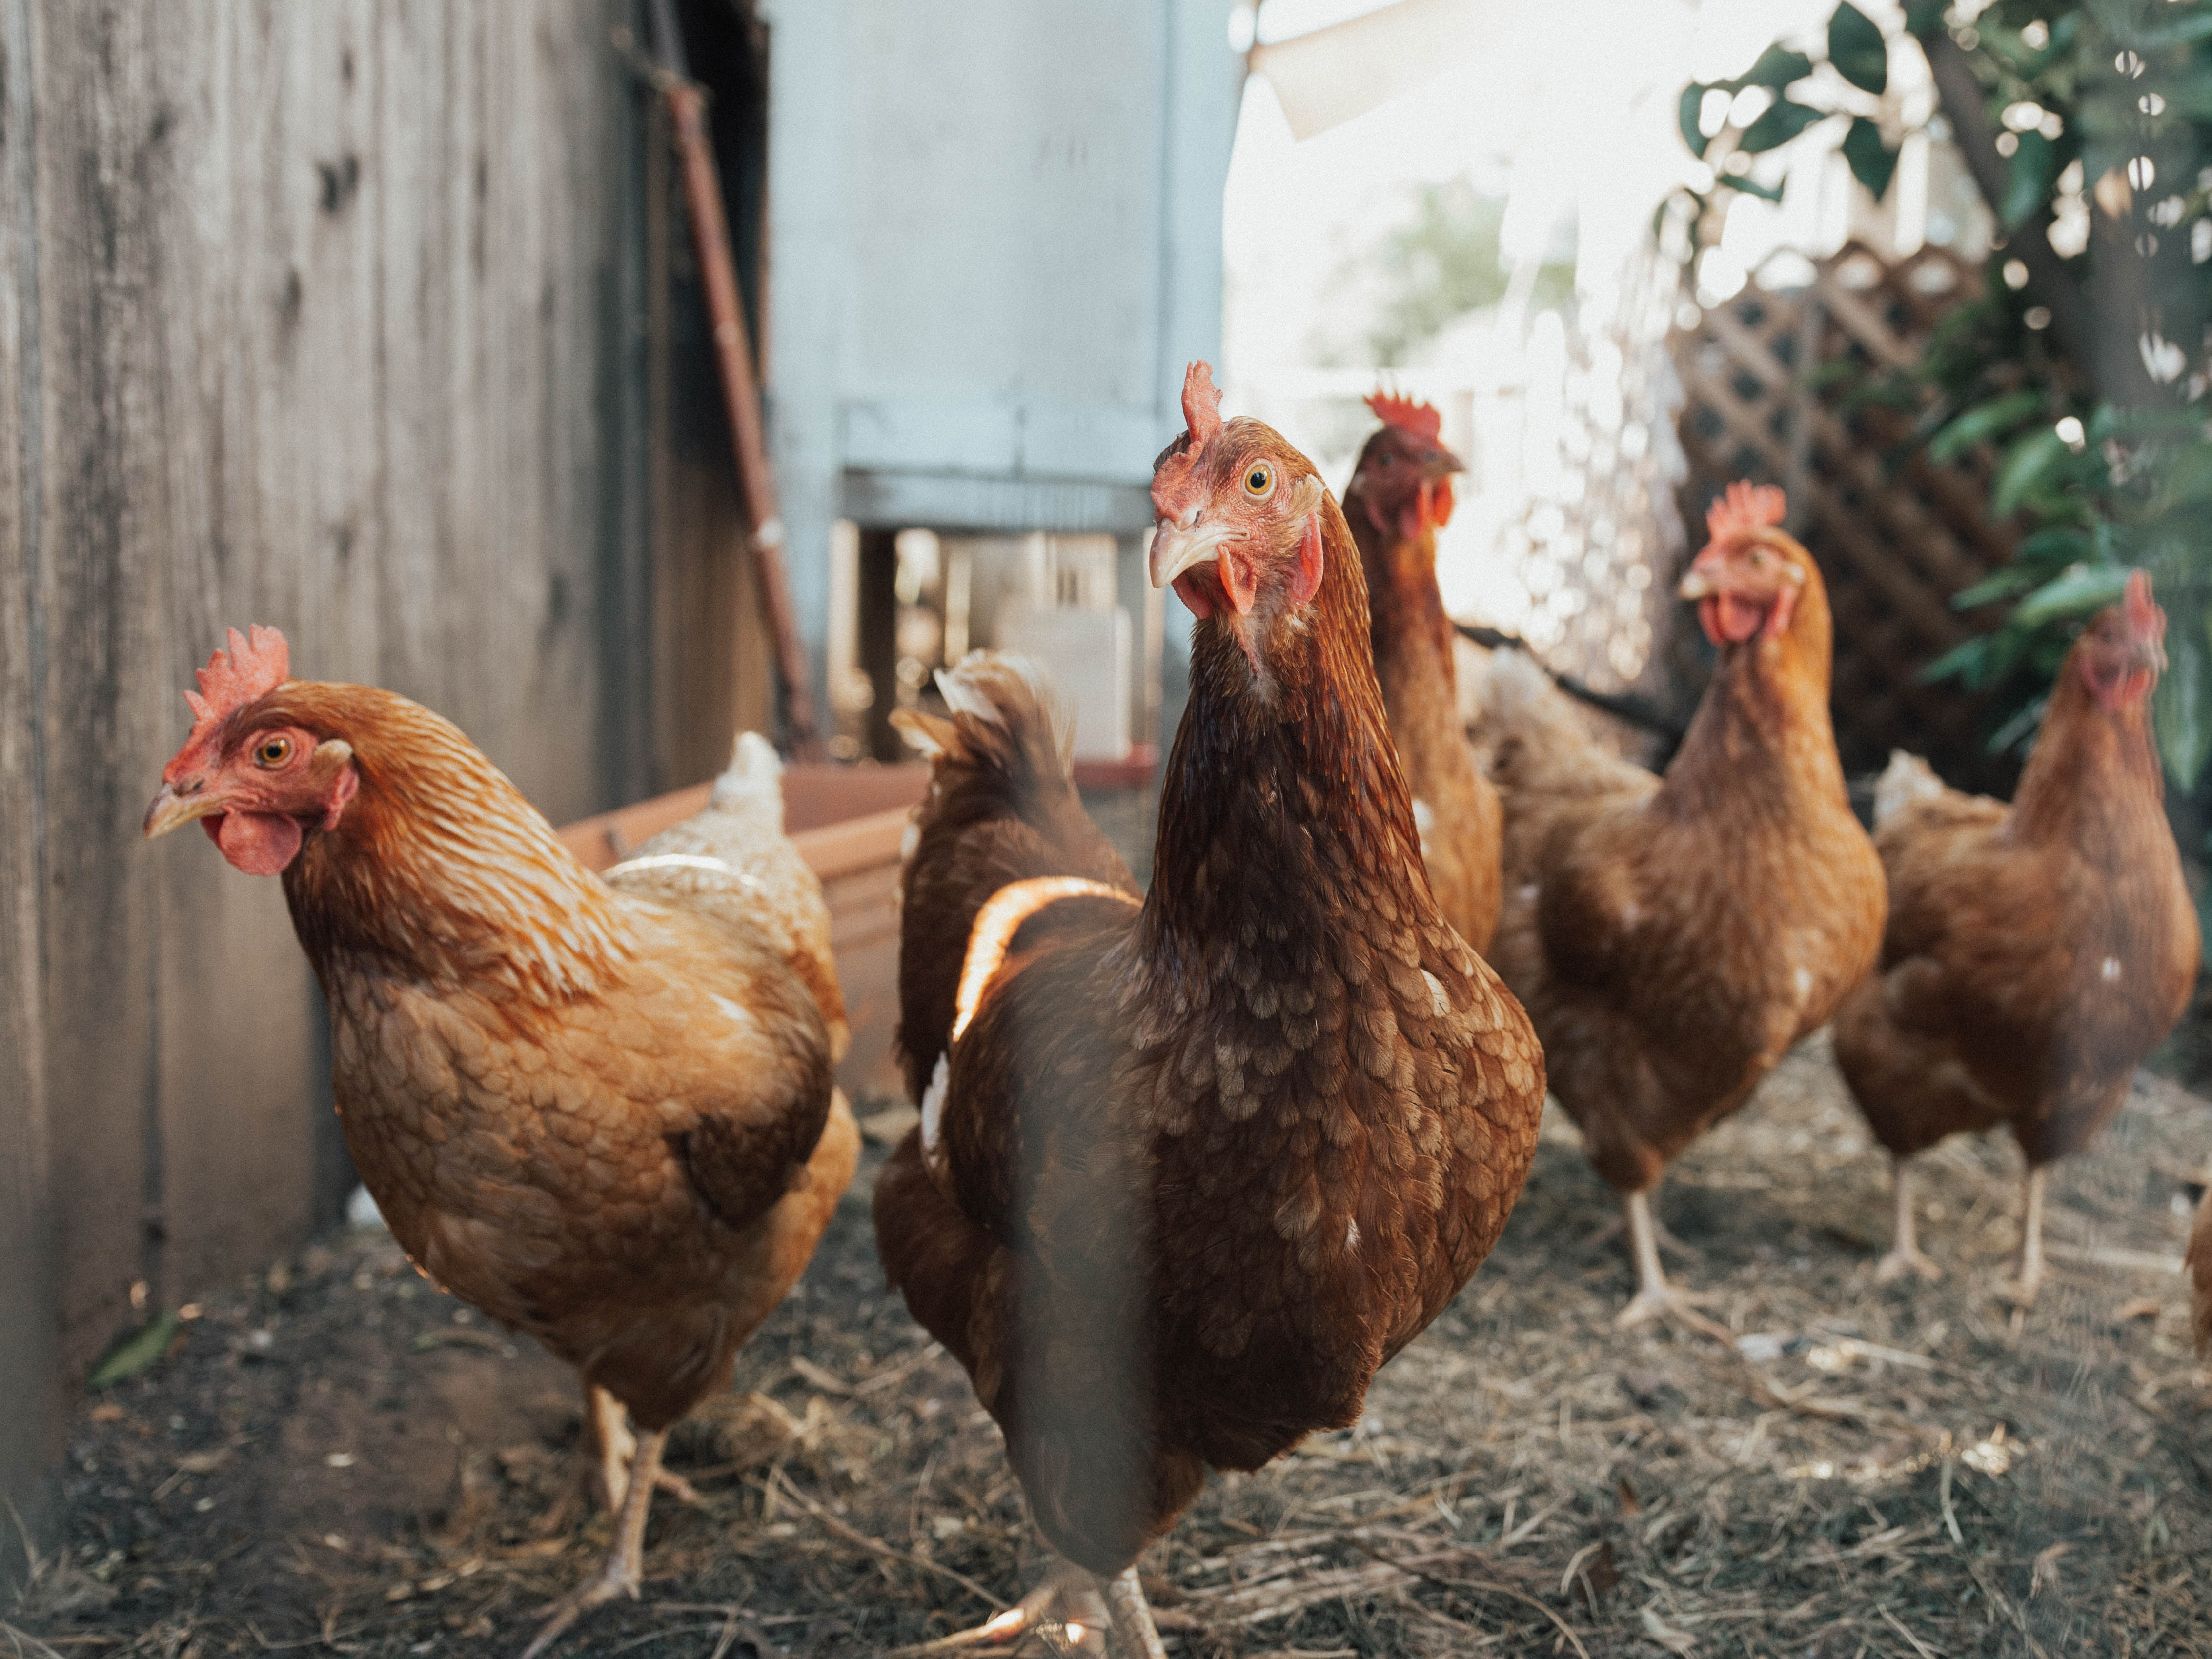 Domestic poultry's 'food security catch 22'